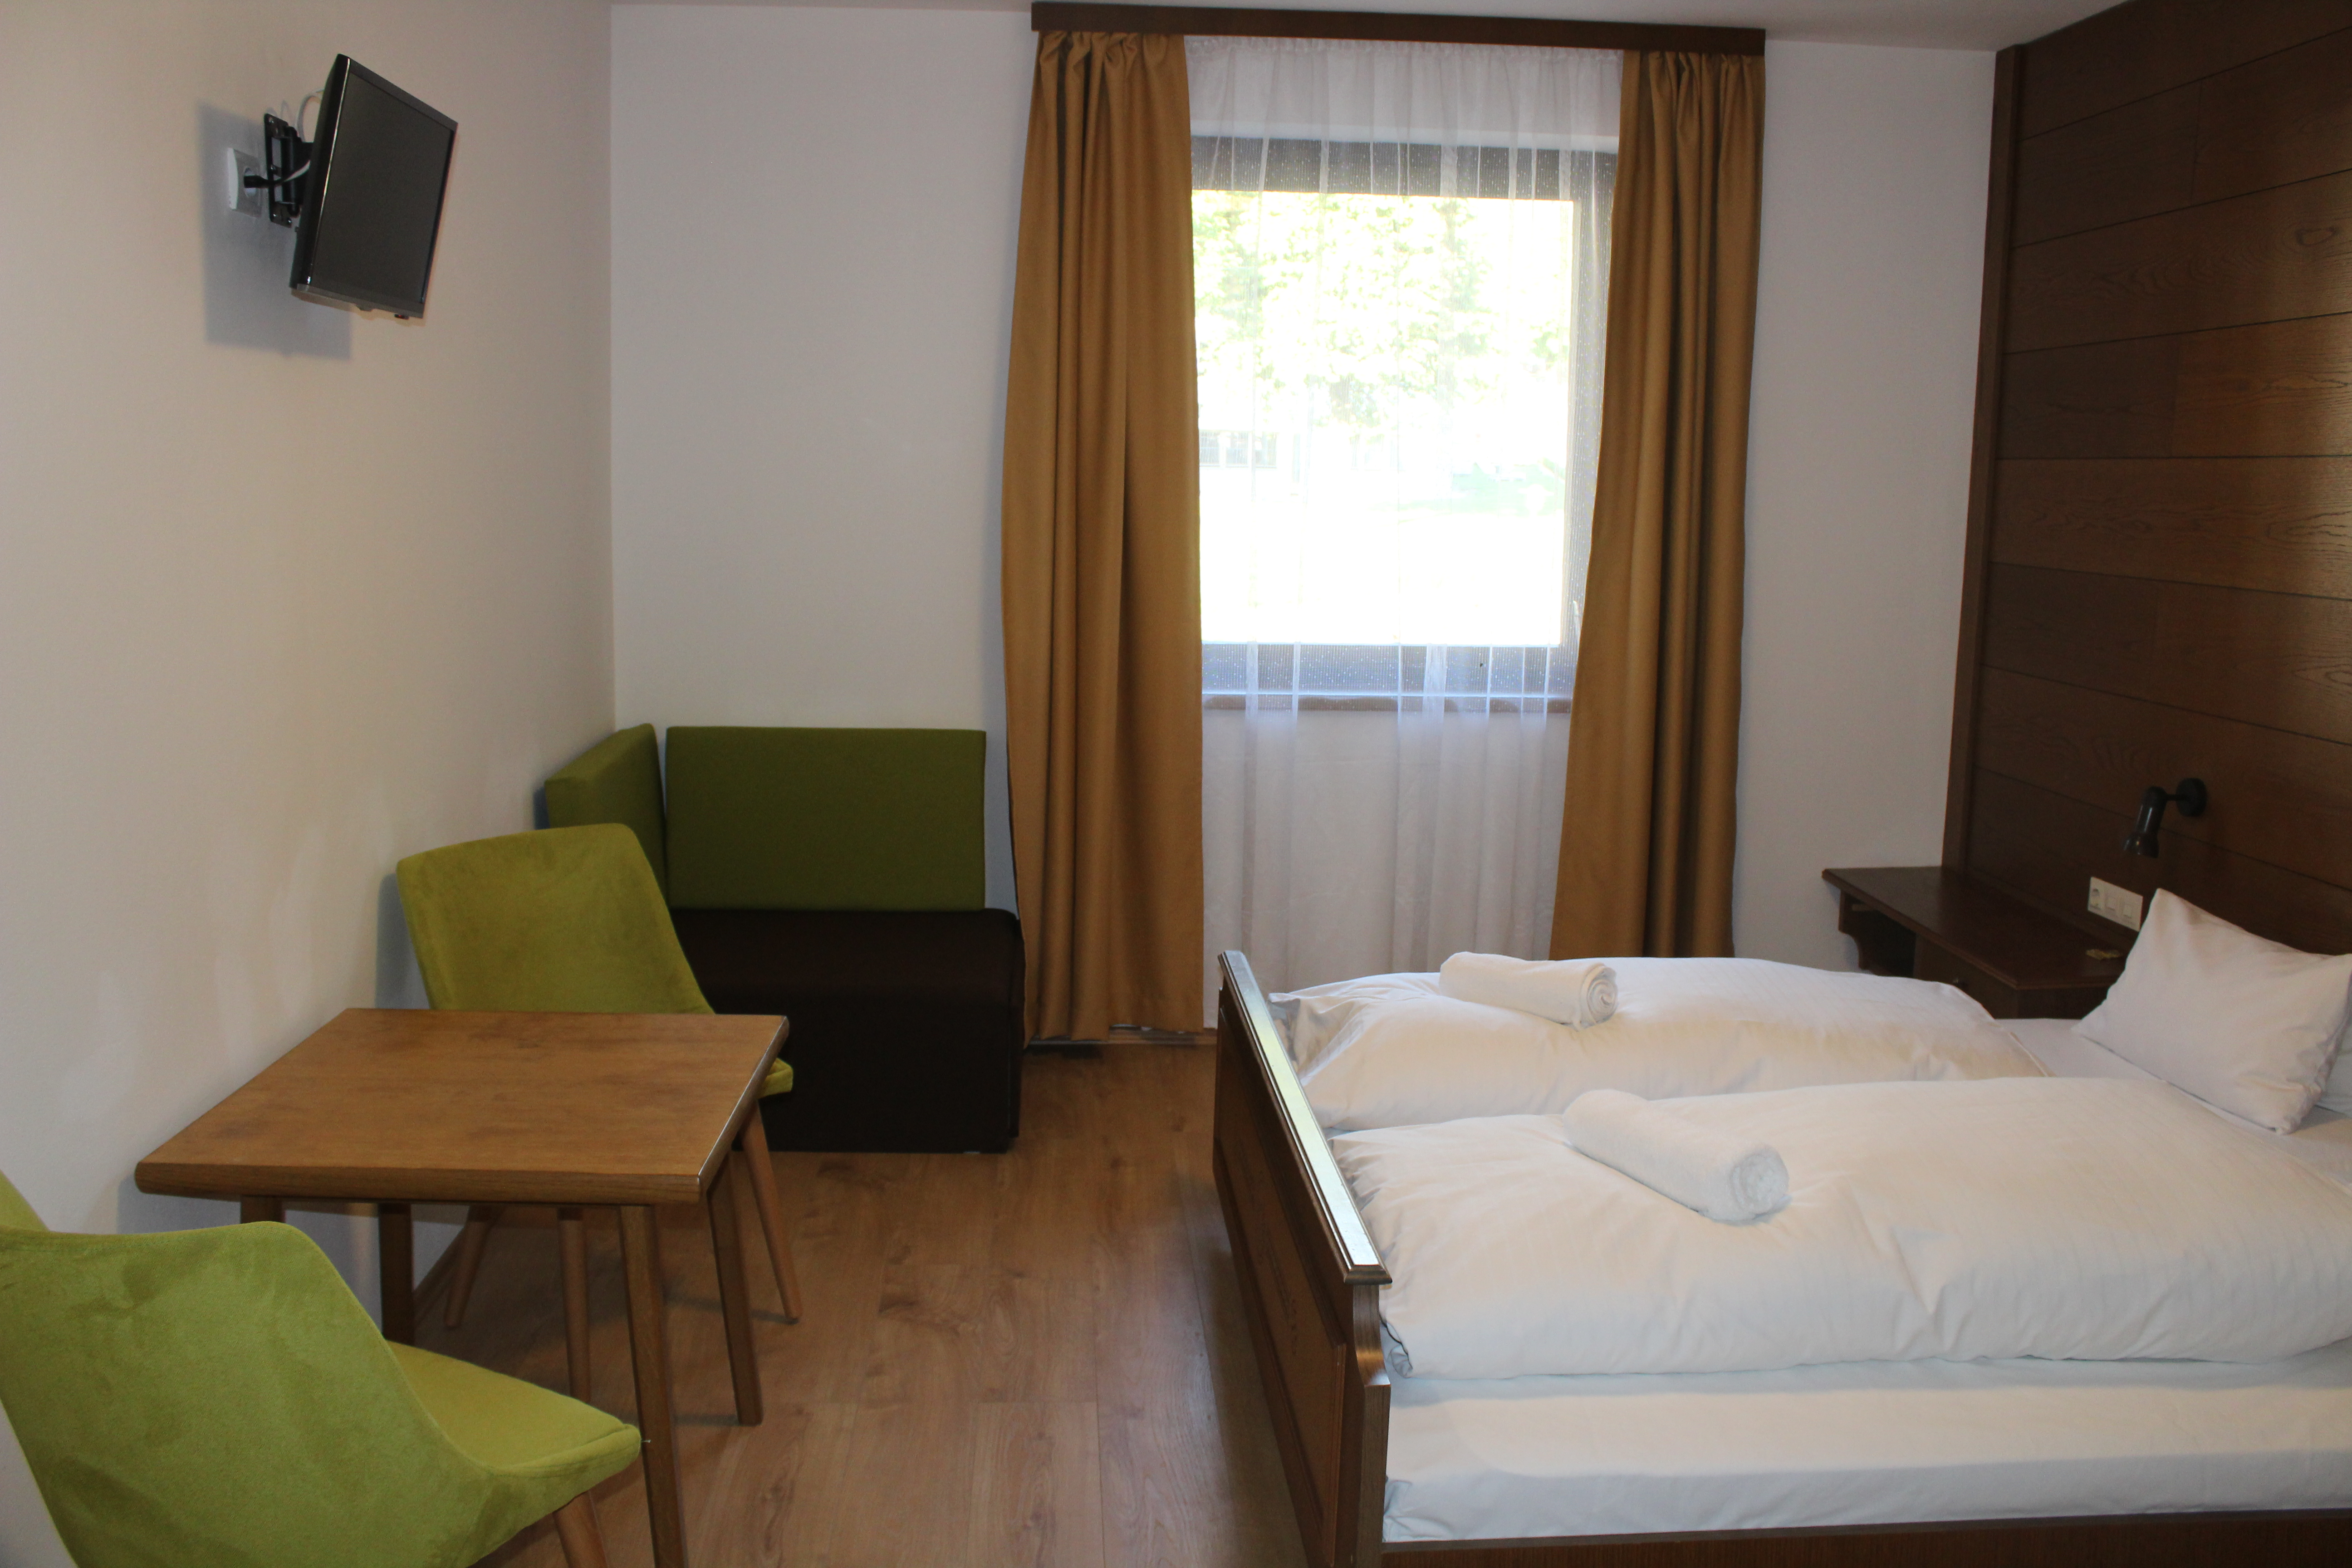 Standard double room + chairbed